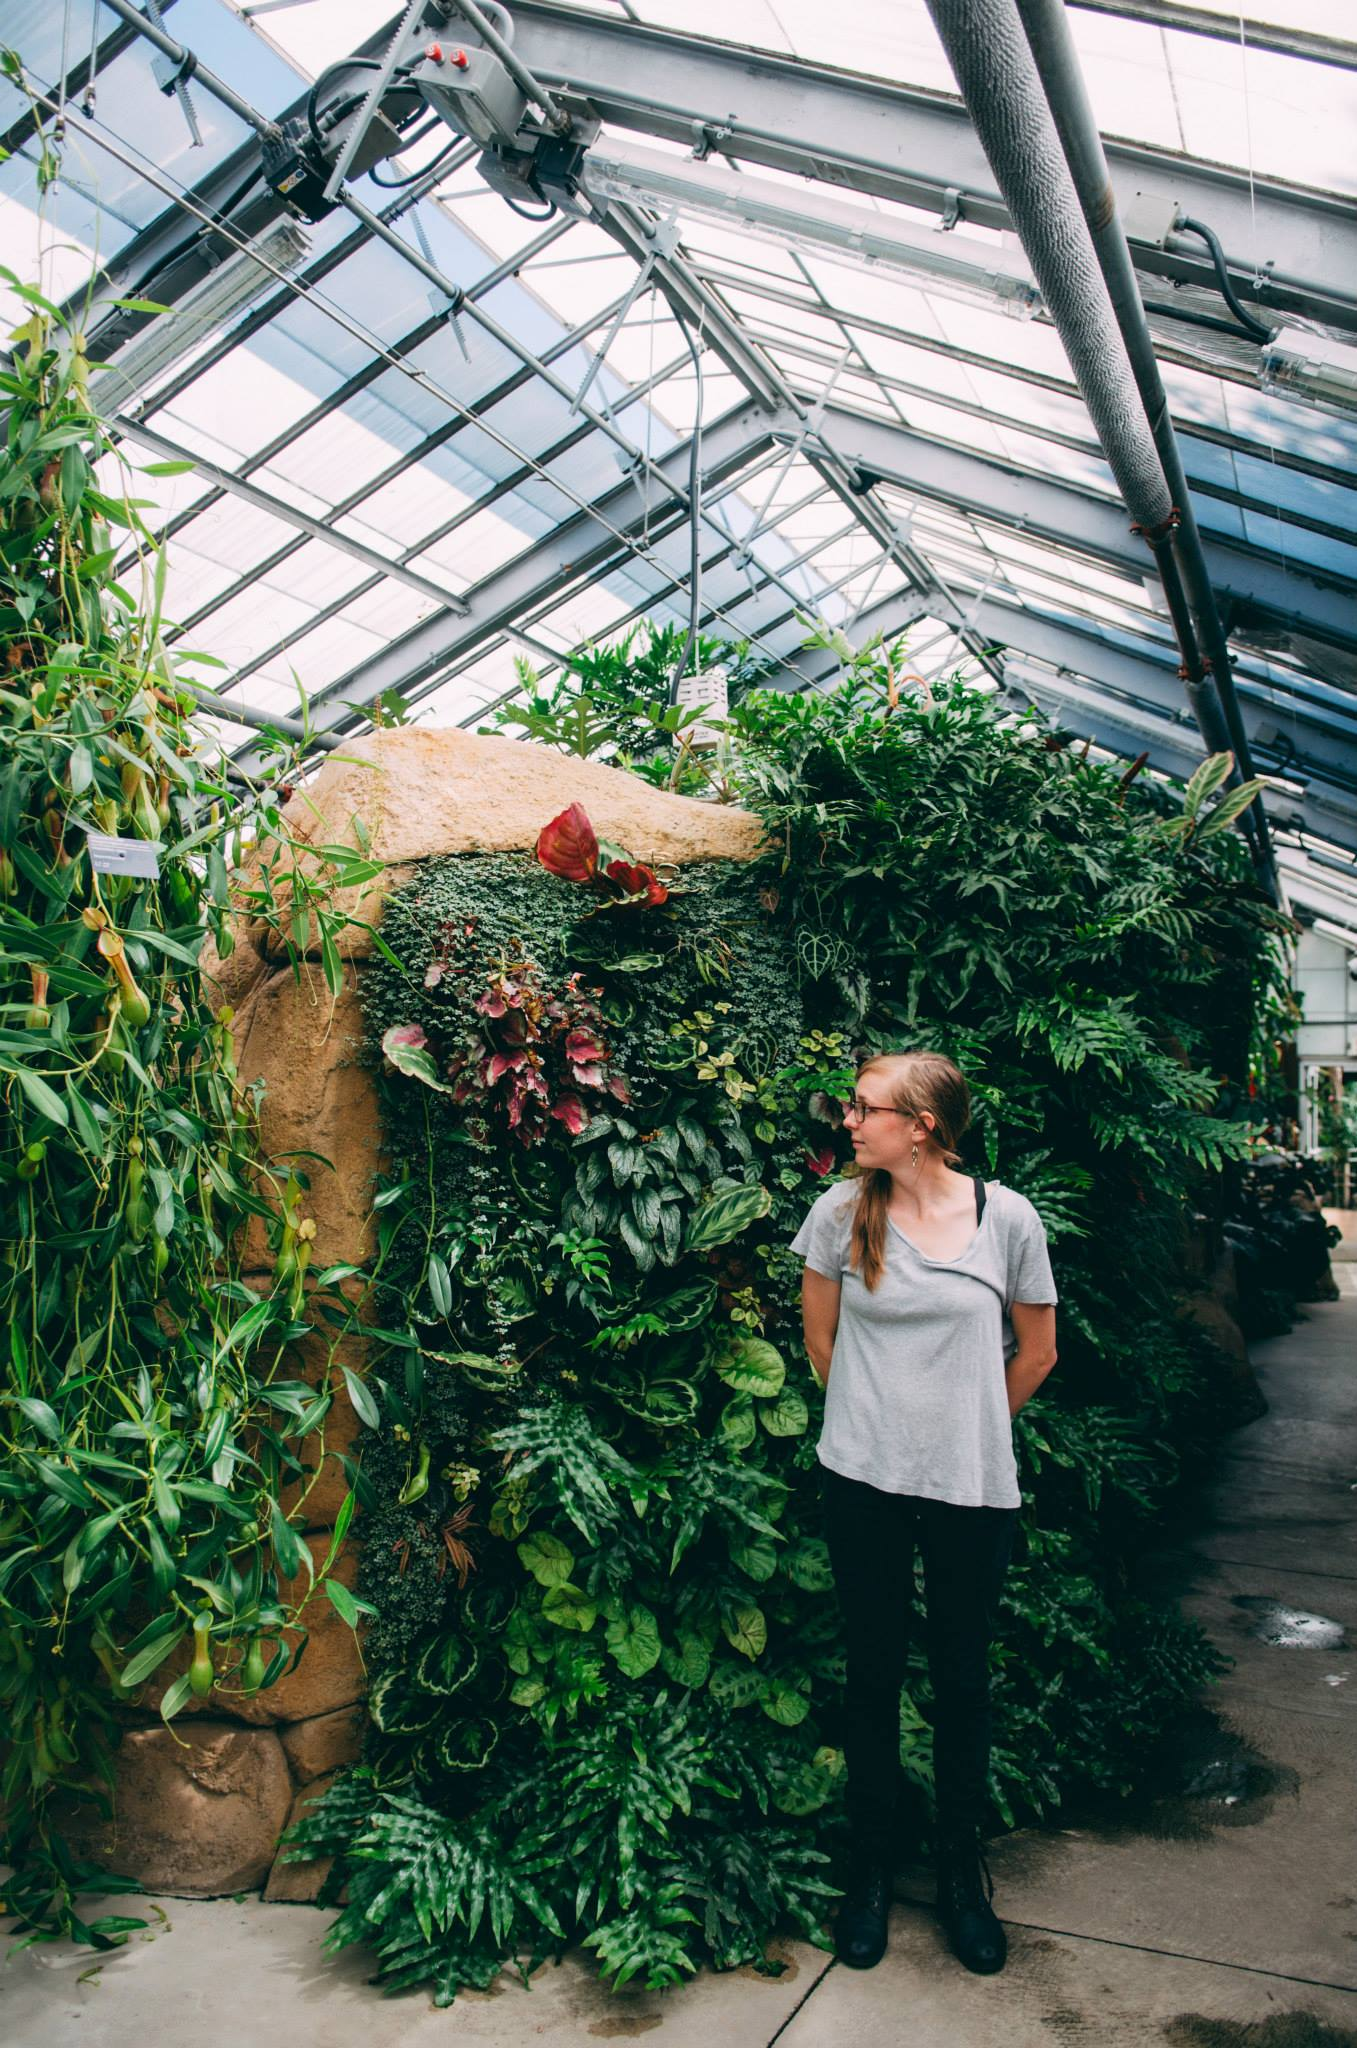 Cari Griffith is the Produce Manager at Grubb's Grocery and the creator of  J  ackson Harvest Share .She is also a freelance photographer and part-time terrarium builder.